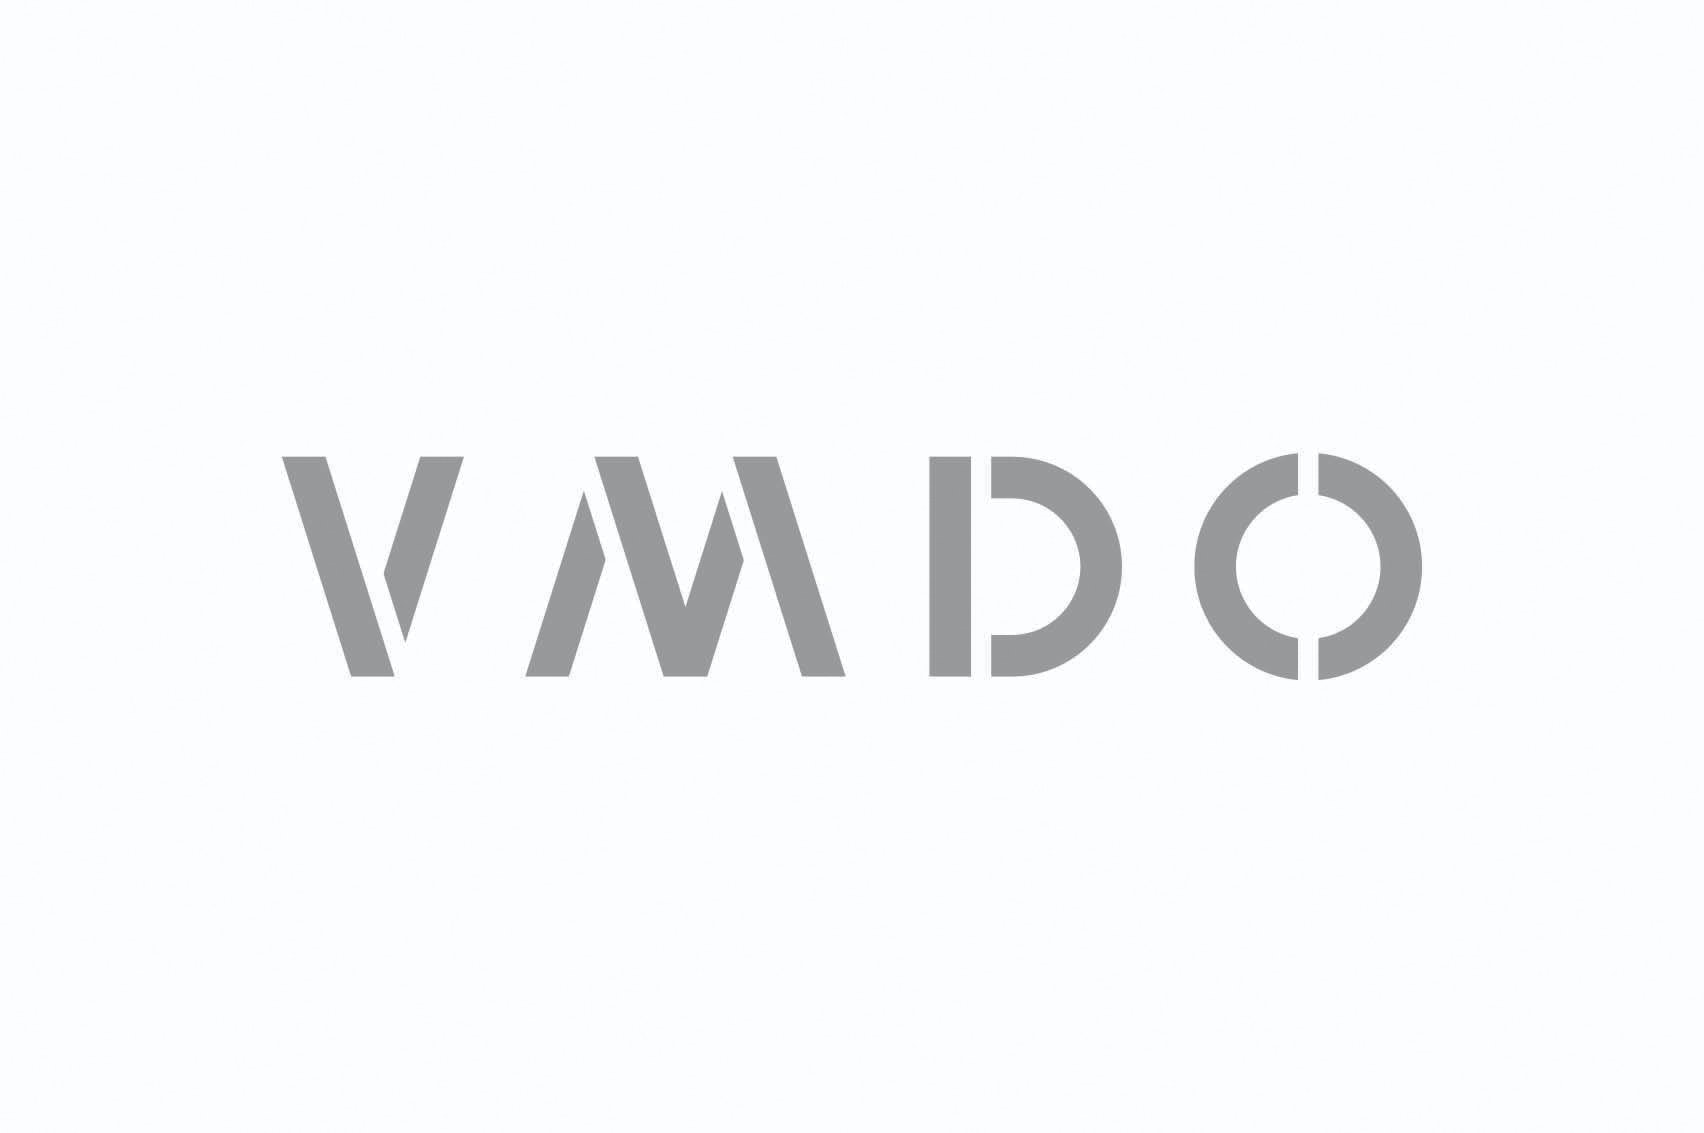 VMDO Architecture Firm Rebrand